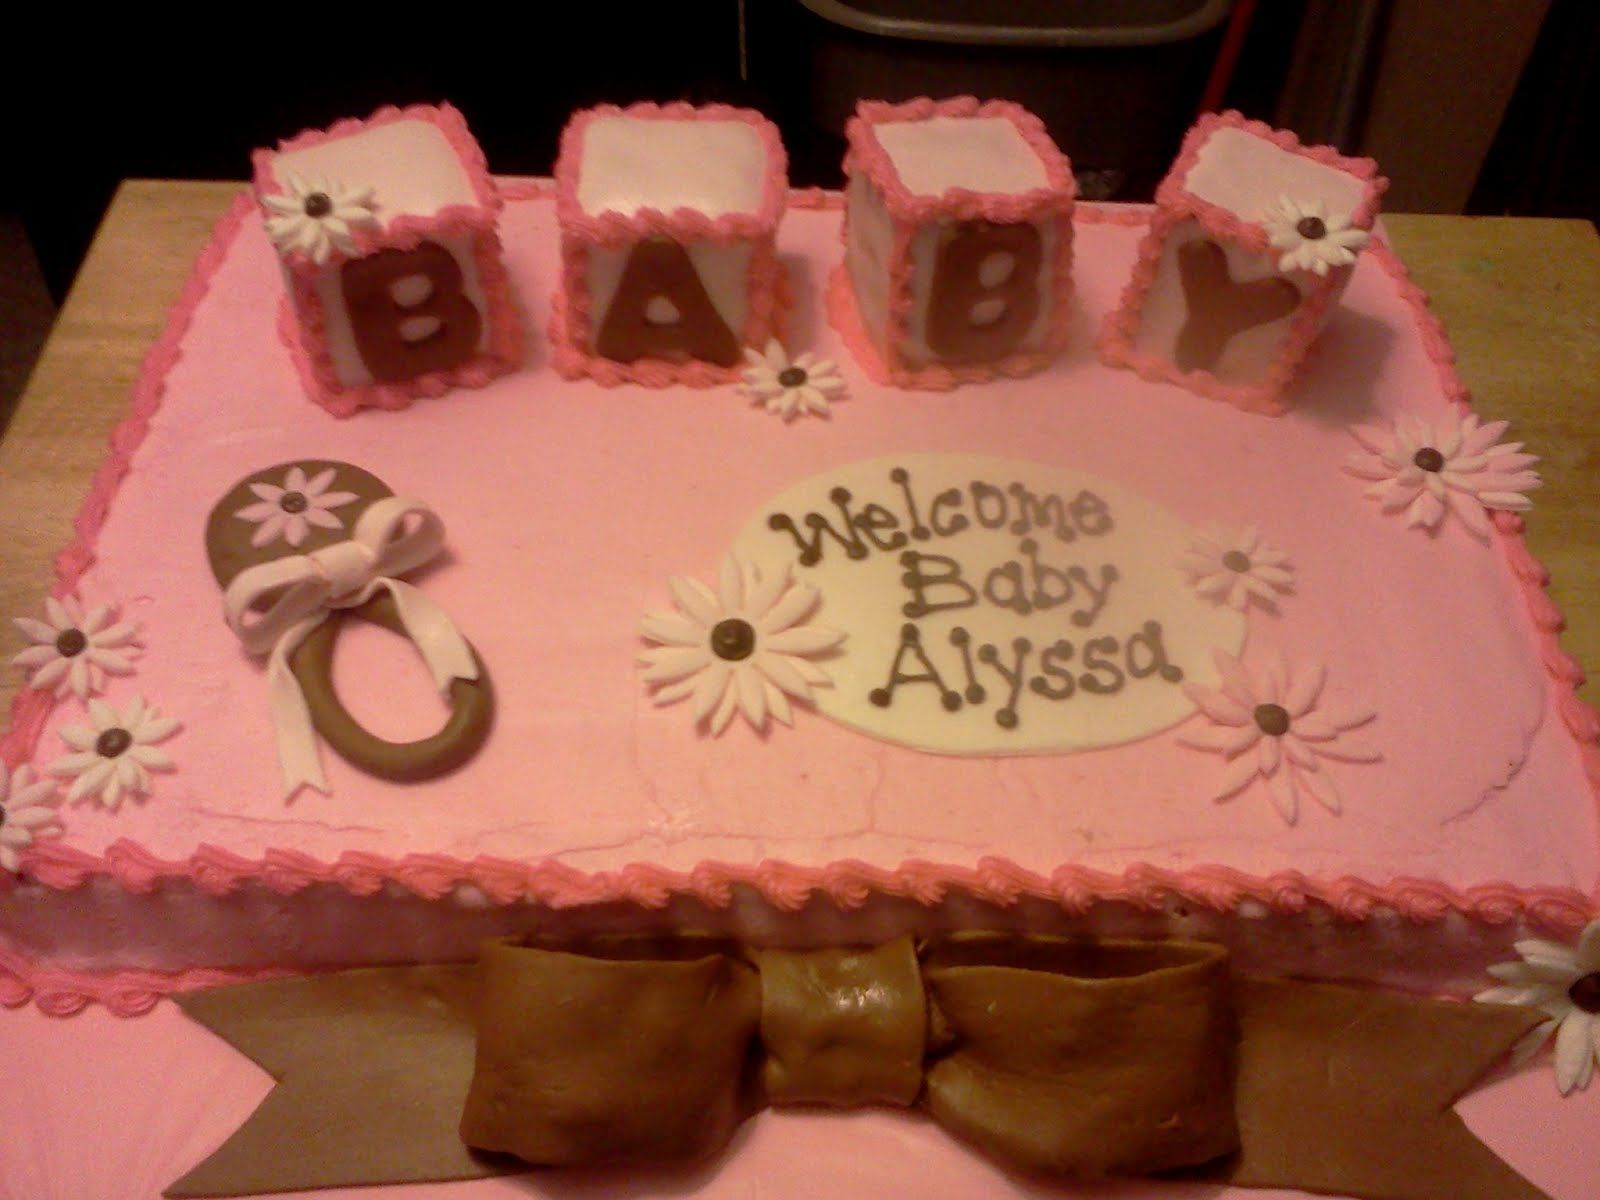 kroger baby shower cakes cake is frosted with buttercream and